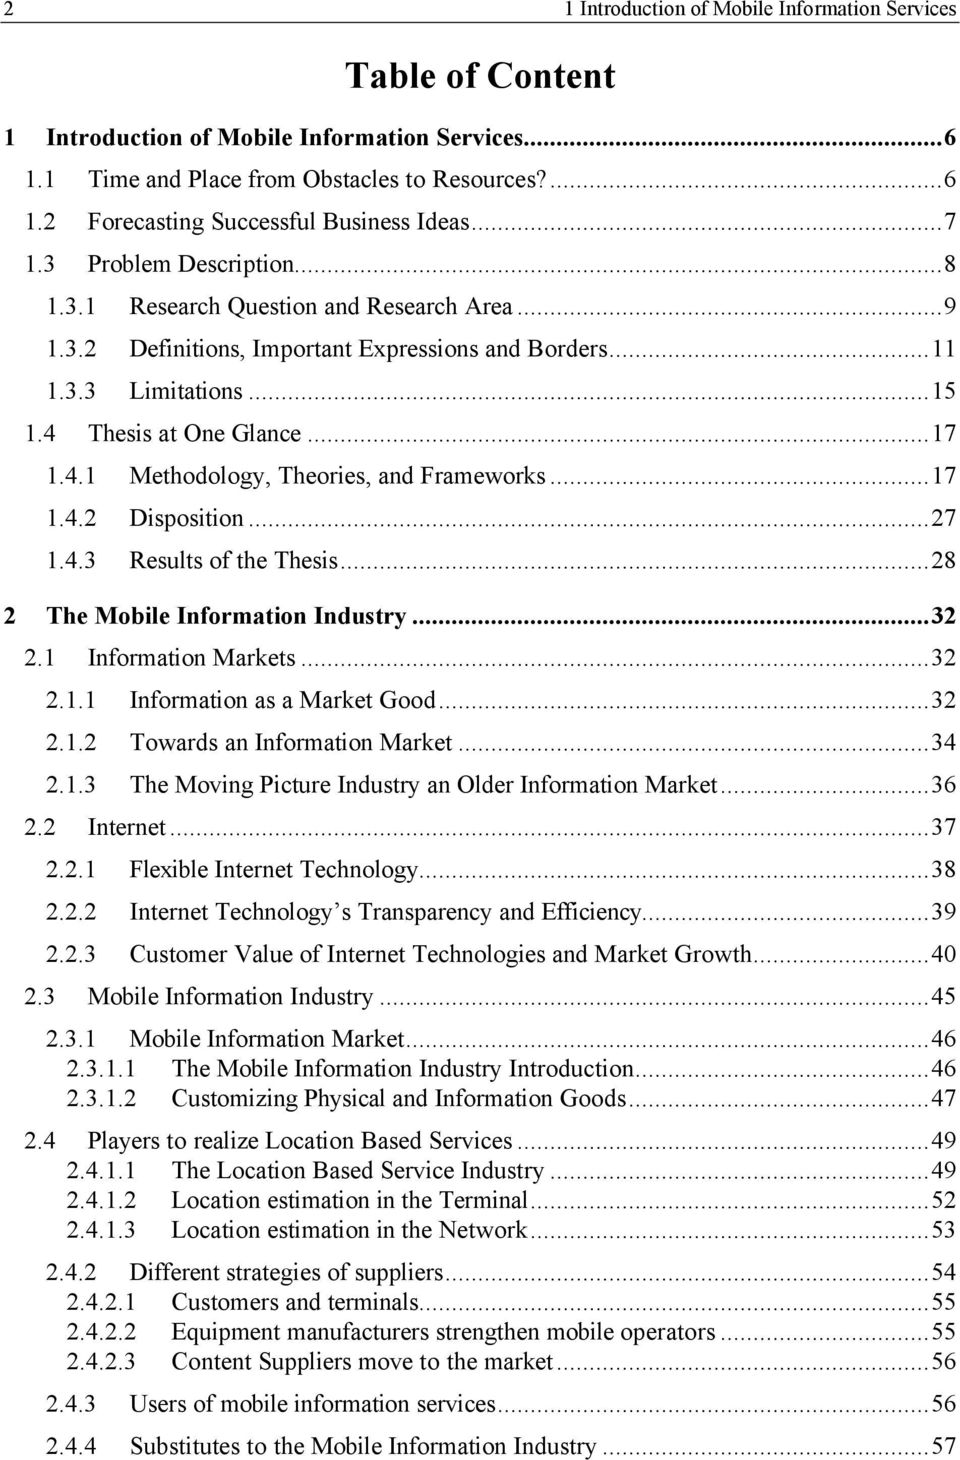 Thesis at One Glance...17 1.4.1 Methodology, Theories, and Frameworks...17 1.4.2 Disposition...27 1.4.3 Results of the Thesis...28 2 The Mobile Information Industry...32 2.1 Information Markets...32 2.1.1 Information as a Market Good.